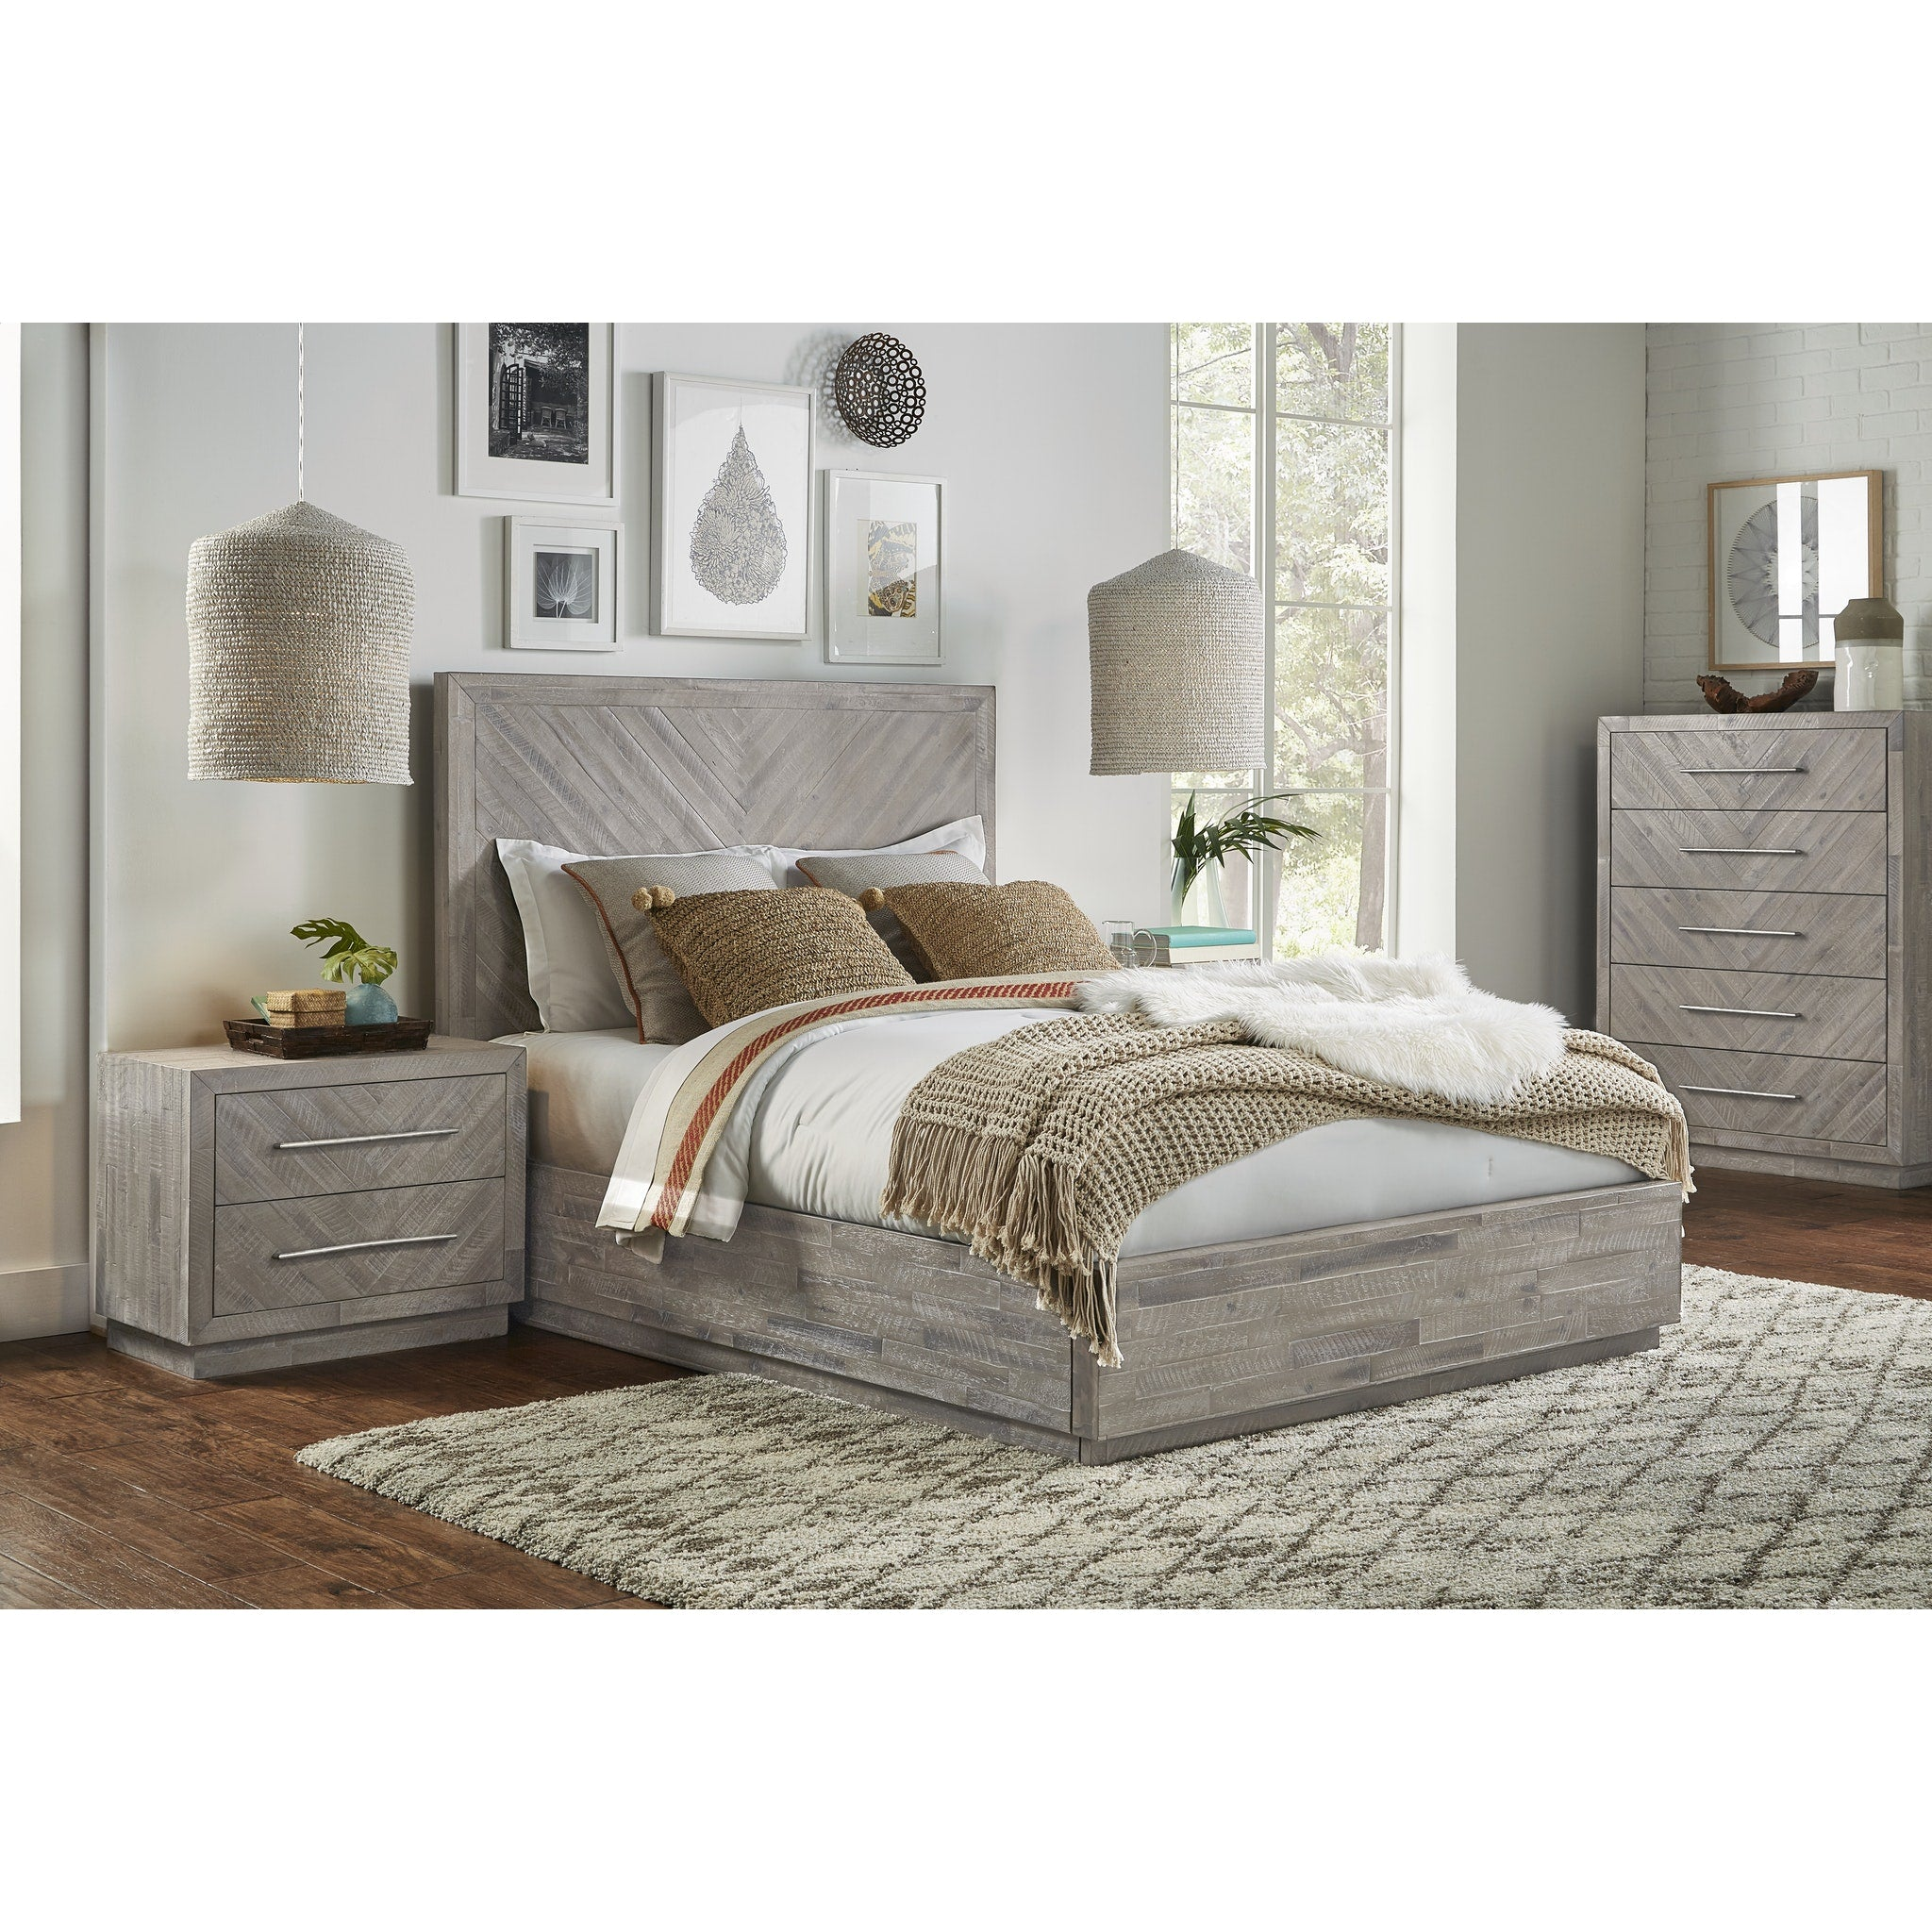 Alexandra King-Size Solid Wood Storage Bed in Rustic Latte